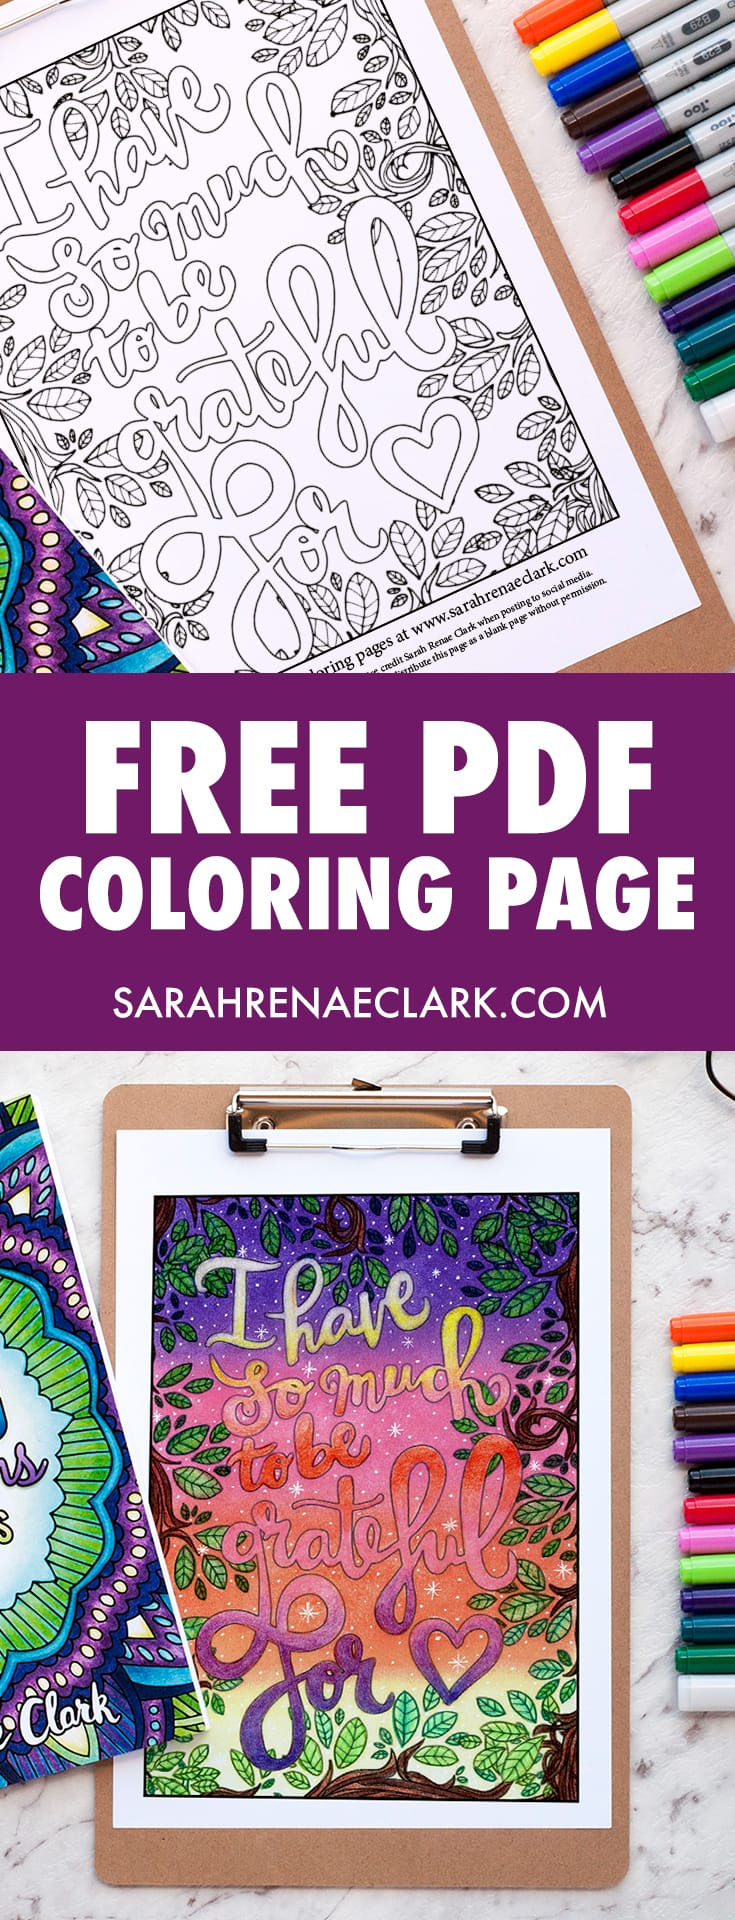 "This free coloring page is a lovely reminder to be thankful in every situation. Get it free from www.sarahrenaeclark.com | Colored by Debbie Schroeder, this coloring page is from ""A Year of Coloring Affirmations For New Mothers"" adult coloring book by Sarah Renae Clark"